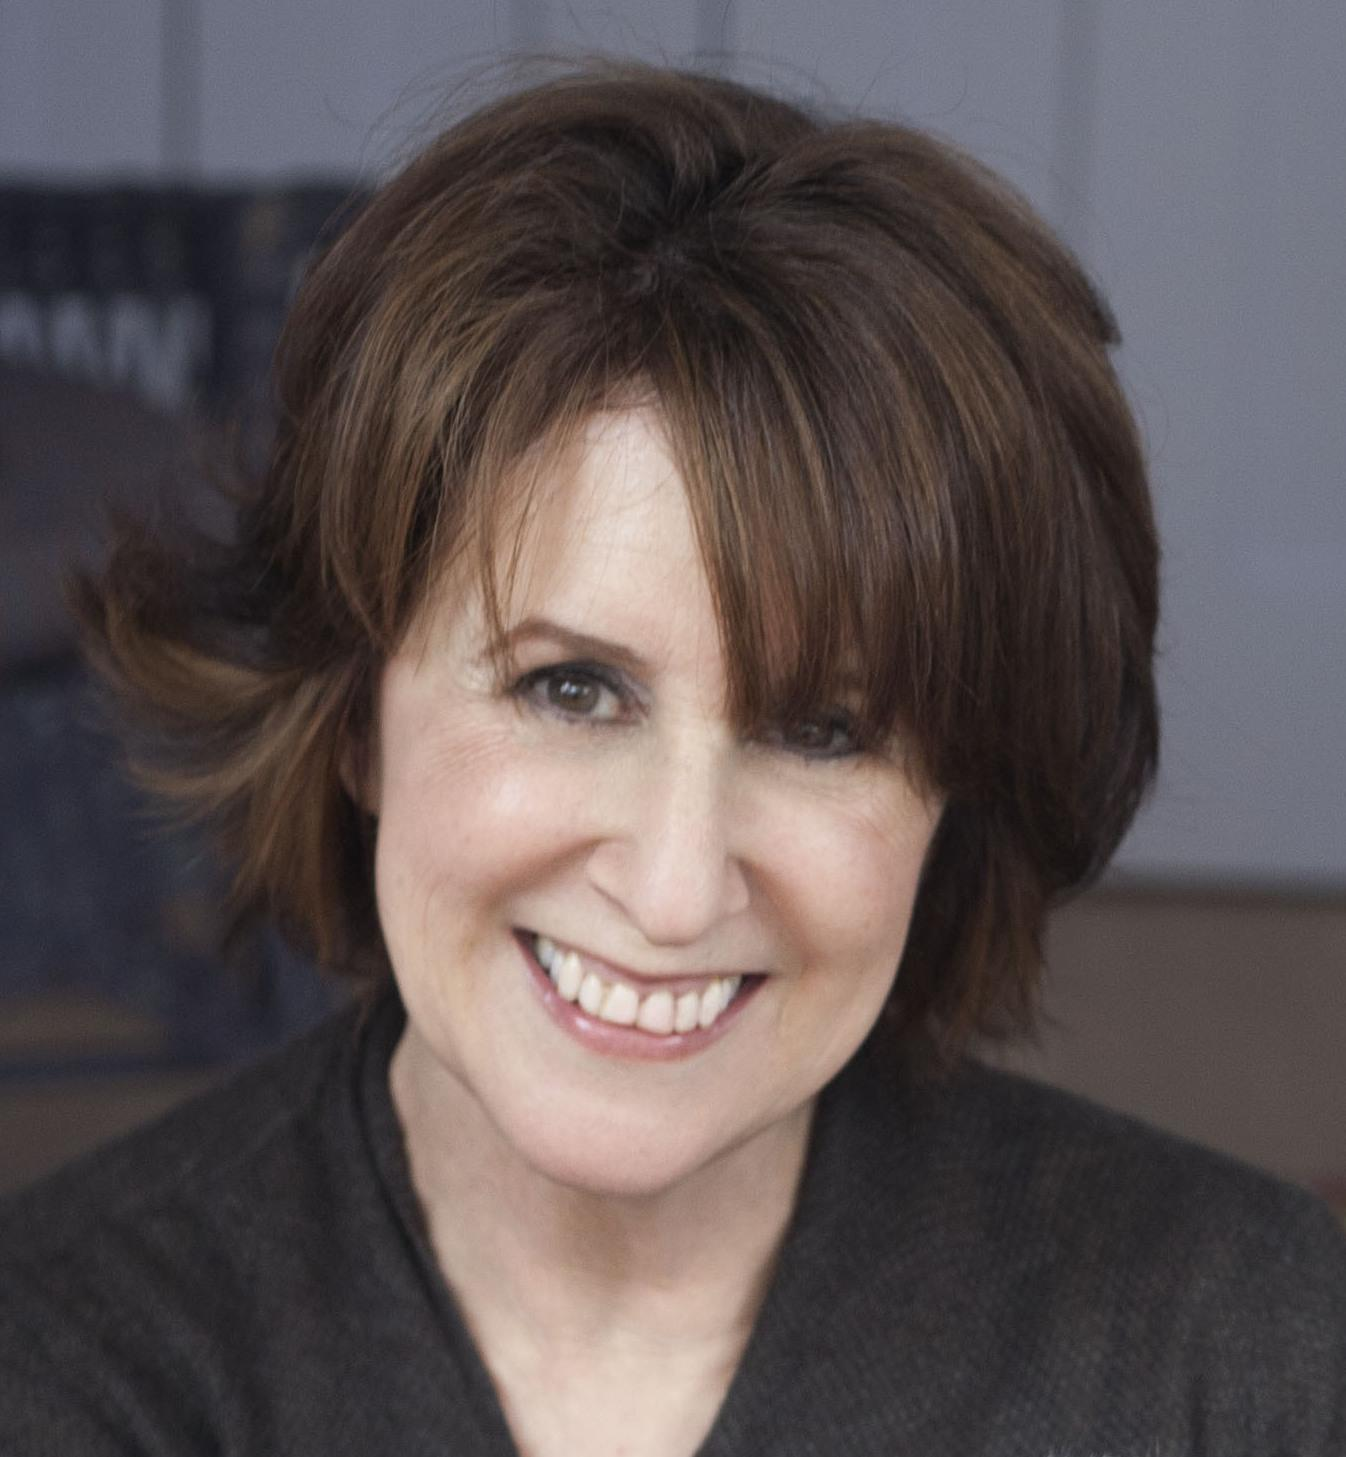 Proposal Essay Example Delia Ephron Is A Novelist And Playwright Her Essays Have Been Published  In Em Essay Writing Examples For High School also Environmental Science Essays Delia Ephron On The Closeness And Complexity Of Sisterhood  Wbfo What Is A Thesis Statement In An Essay